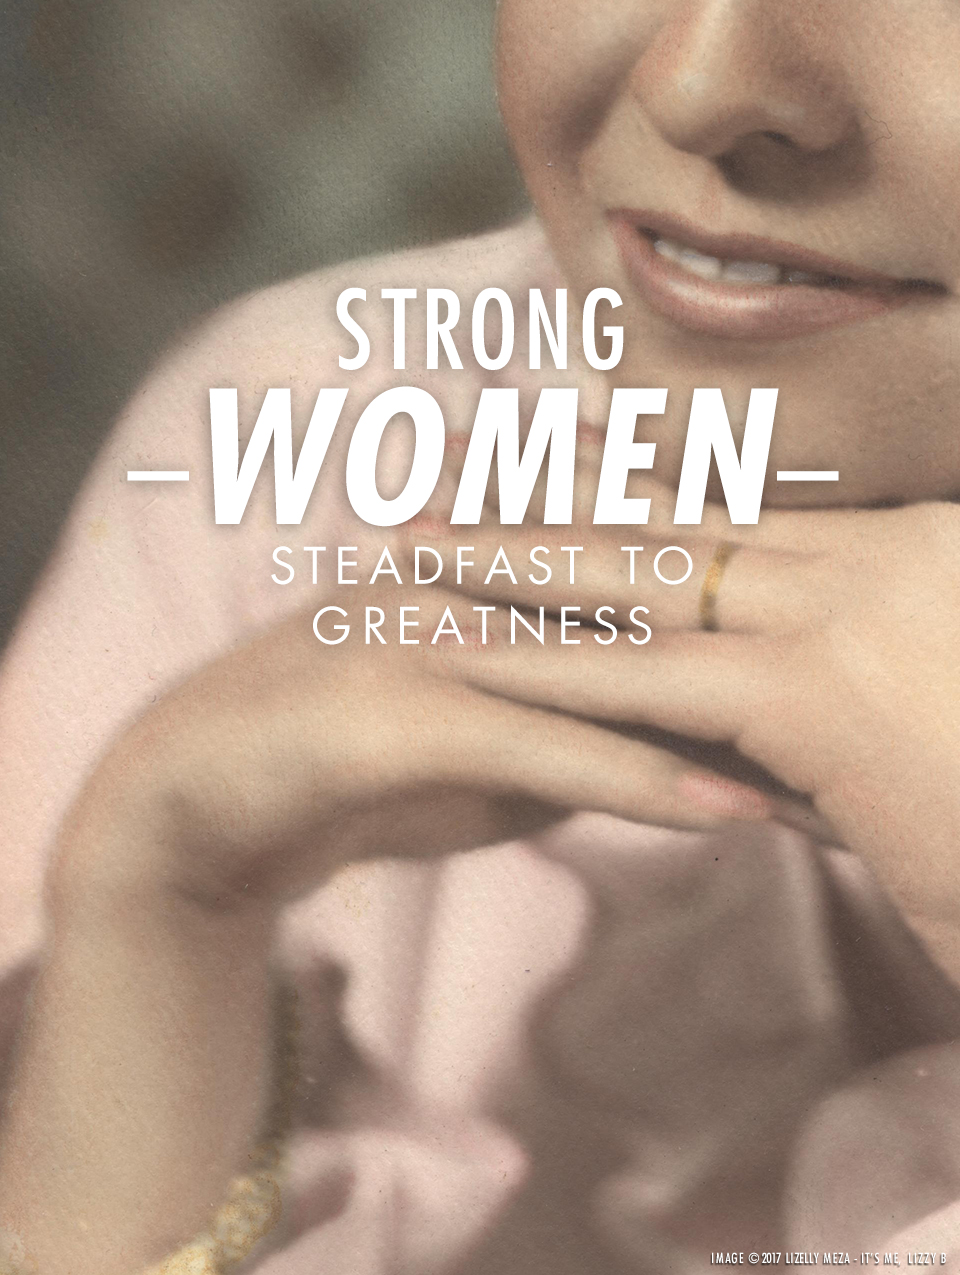 Strong Women—Steadfast to Greatness // It's Me, Lizzy B - Musings on Life, Business, & The Pursuit of Curiosity // Personal blog of Lizelly Meza